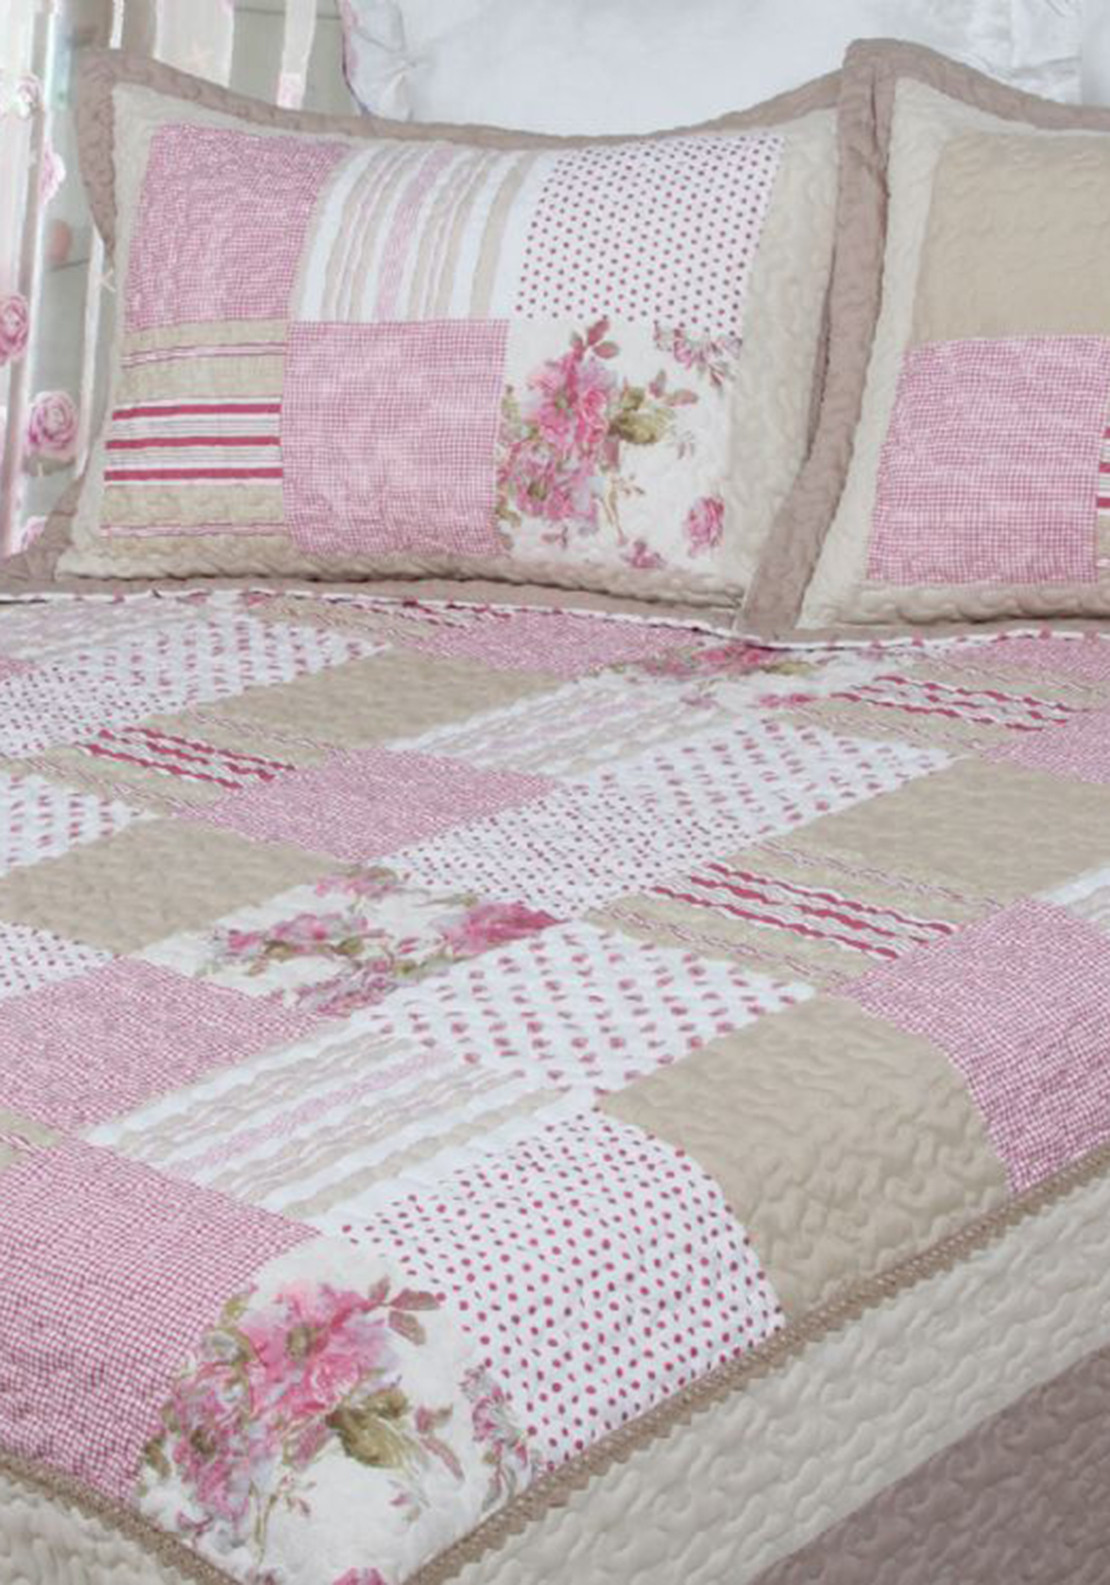 Cocoon Antique Rose Patchwork Bedspread, Pink Multi